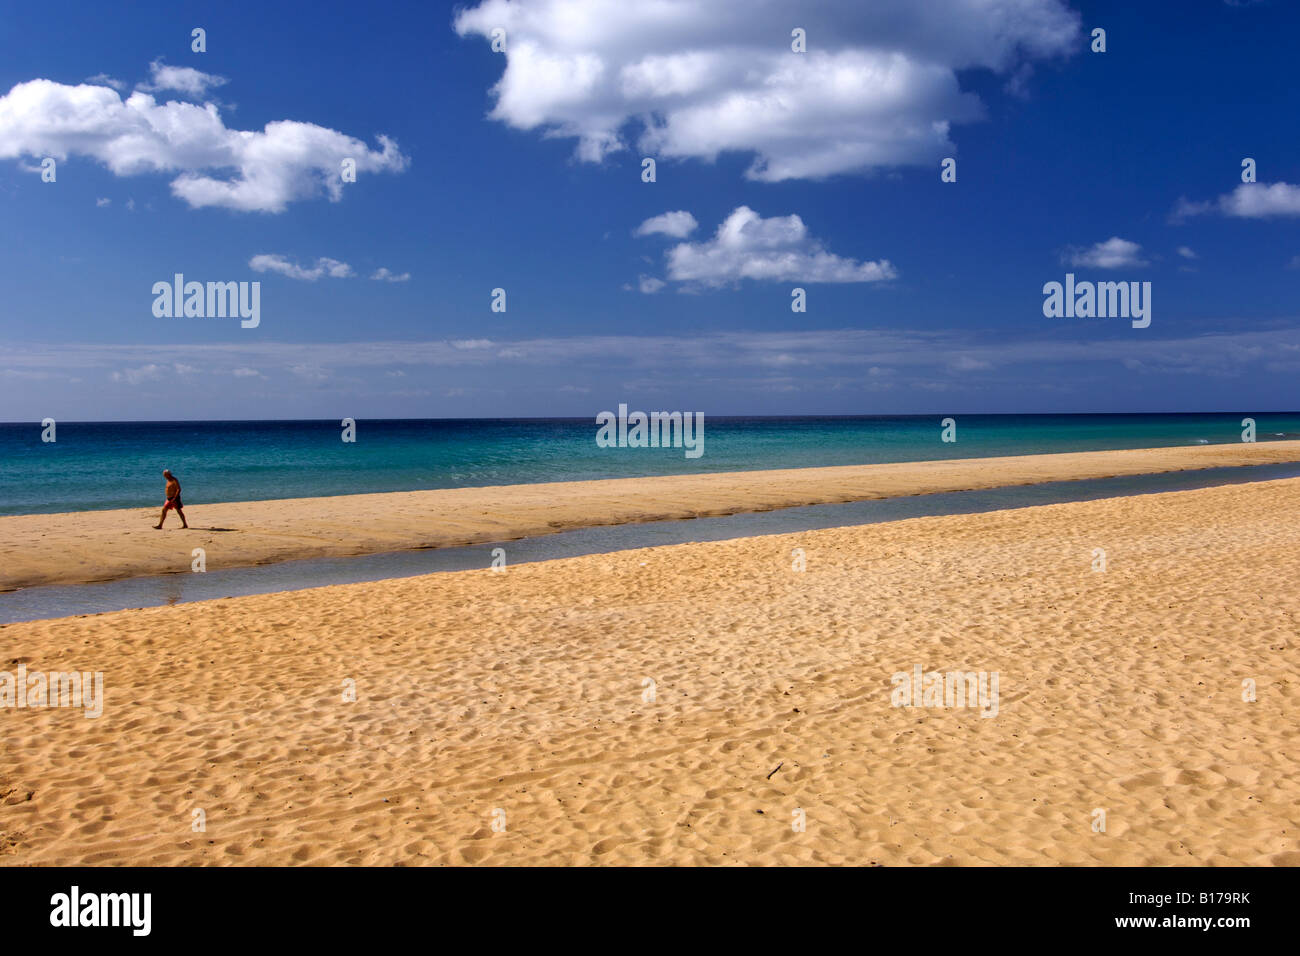 A man walking along the beach of the Portuguese Atlantic island of Porto Santo. - Stock Image